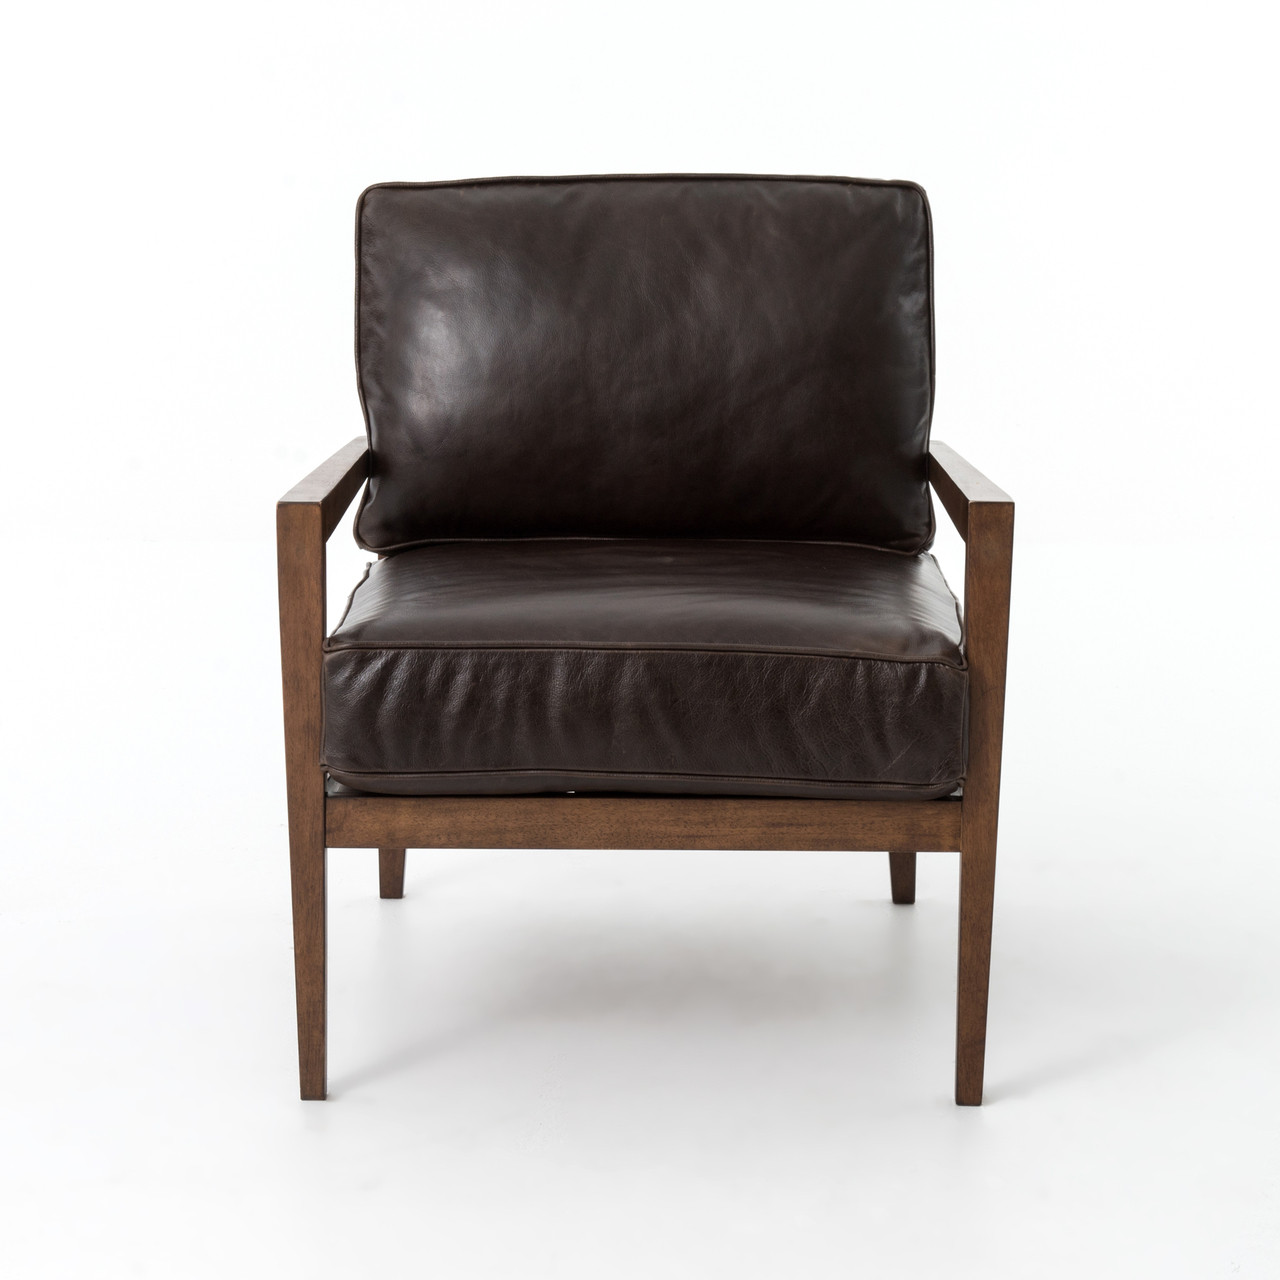 laurent wood frame accent chair - Wood Frame Accent Chairs